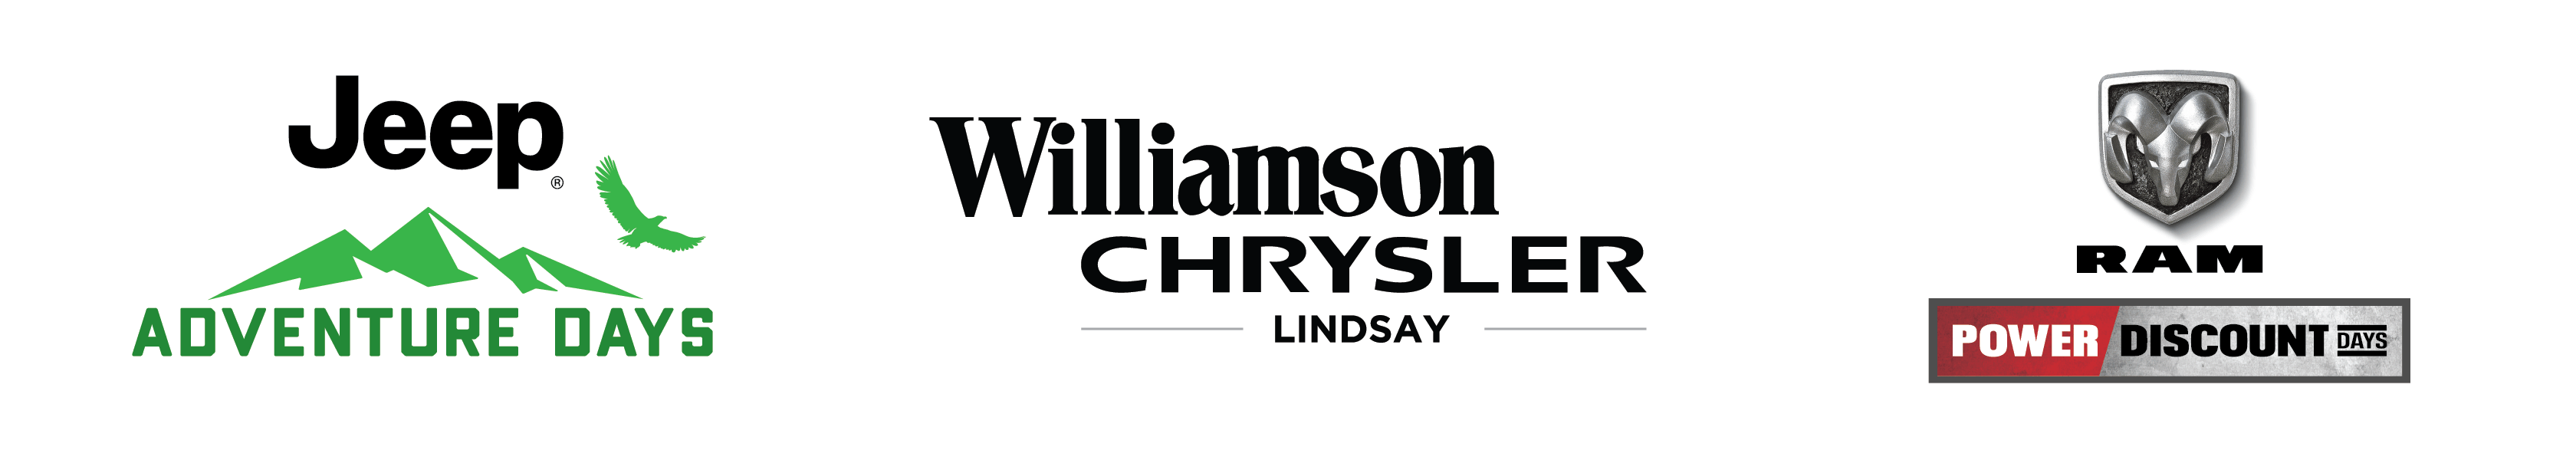 September 2021 Jeep Adventure Days and Ram Power Discount at Williamson Chrysler Lindsay